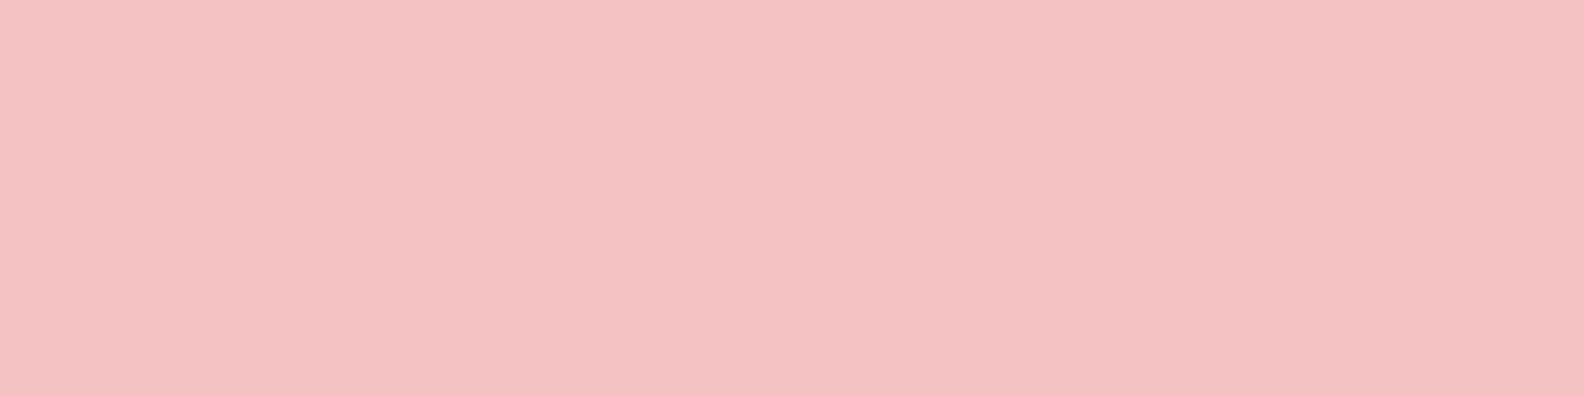 1584x396 Tea Rose Rose Solid Color Background